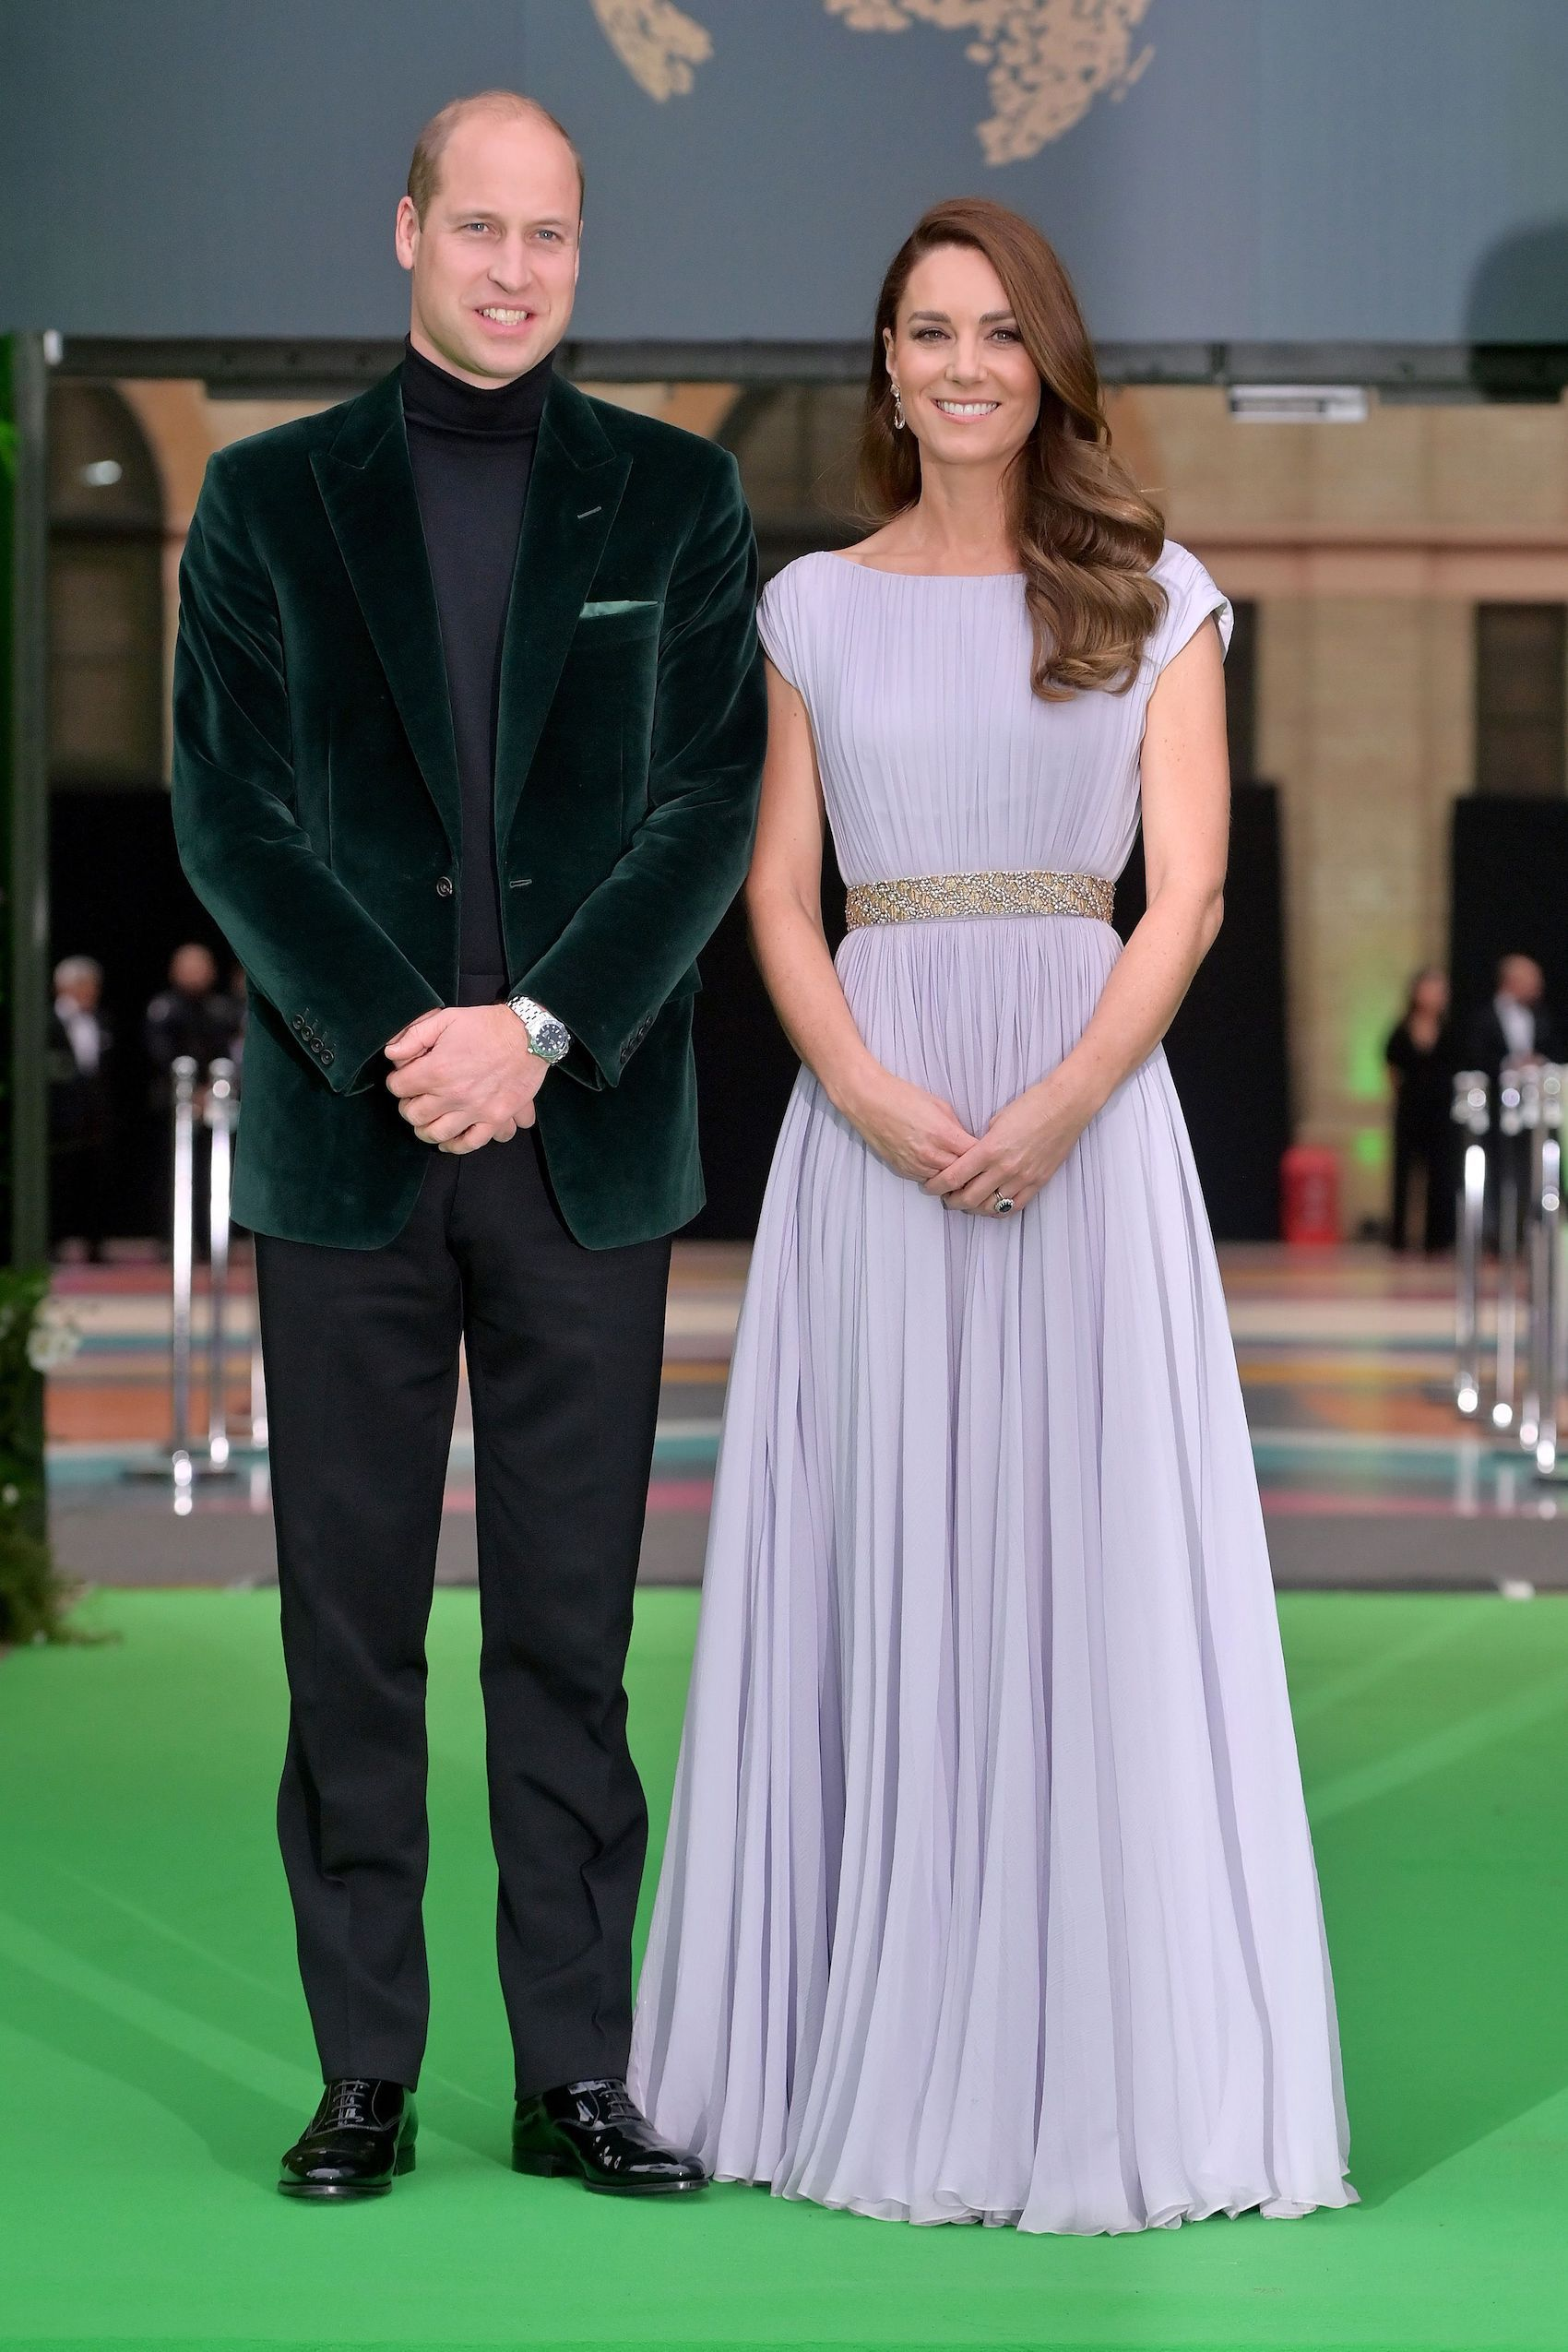 Kate Middleton Brings Back Her Lilac Alexander McQueen Gown for the Earthshot Prize Awards